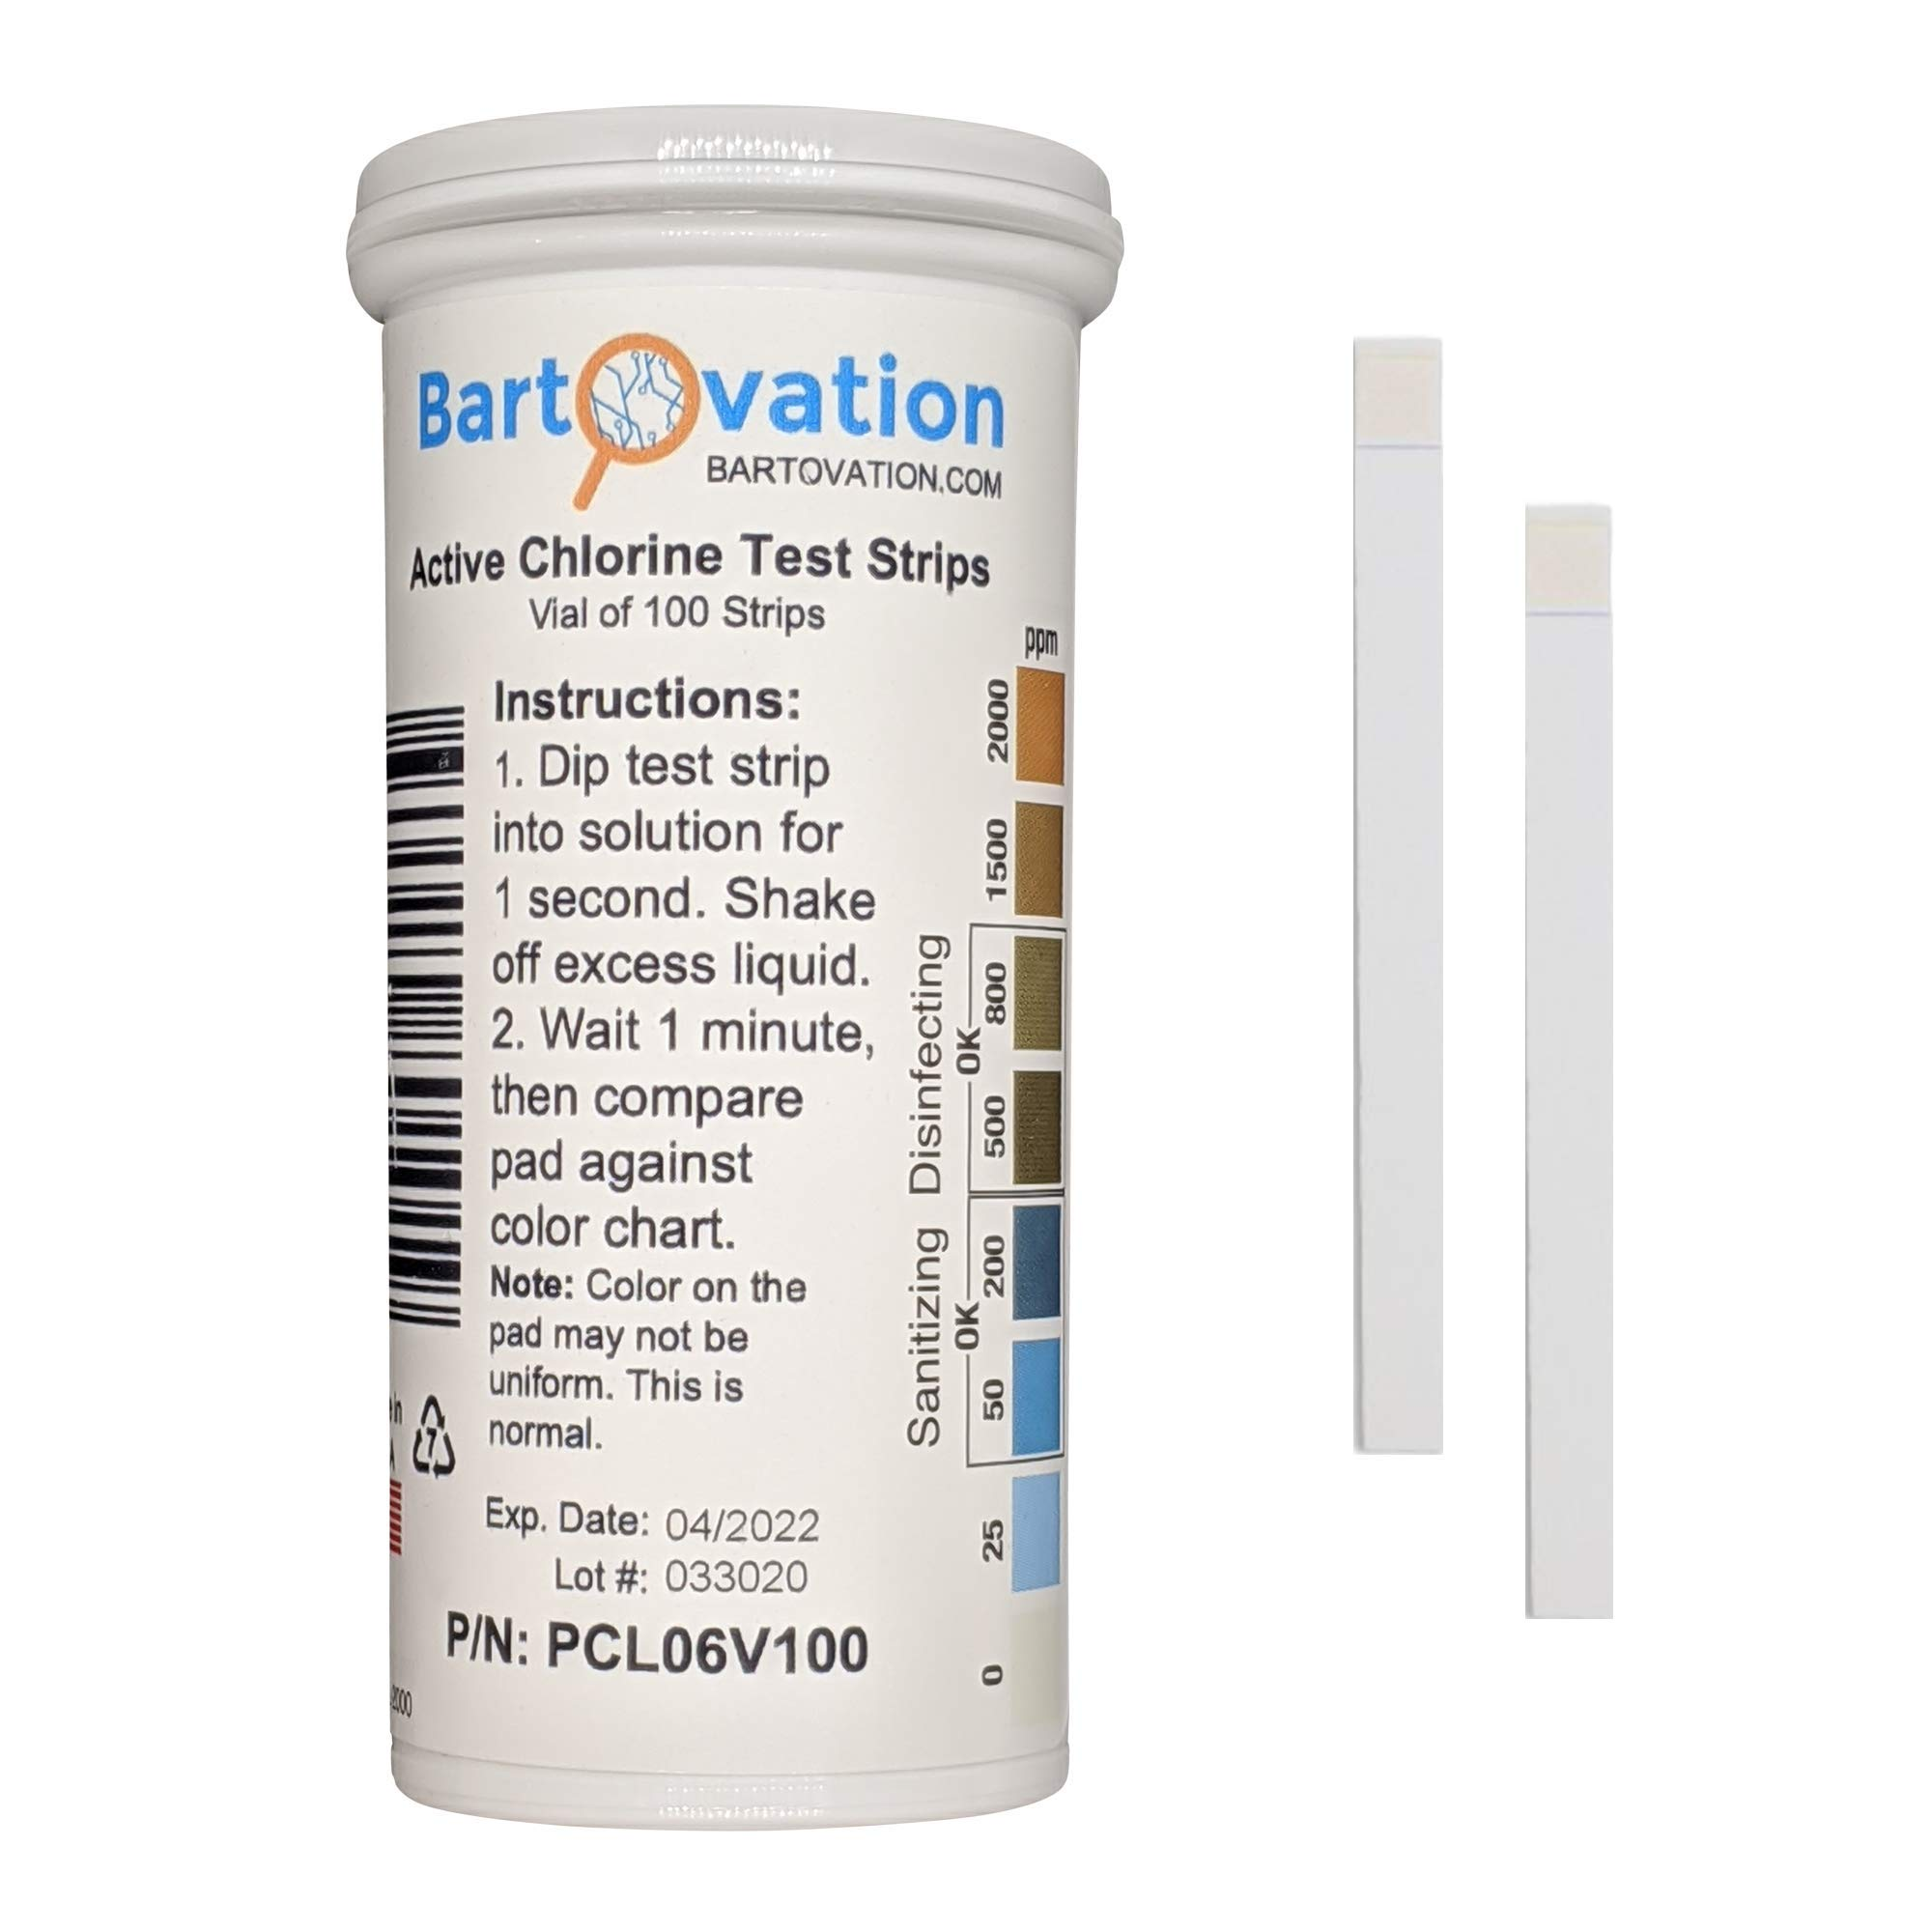 Active Chlorine Bleach Test Strips, 0-2000 ppm [Vial of 100 Plastic Strips] Designed for Daycares and Senior Homes for Sanitizing and Disinfecting